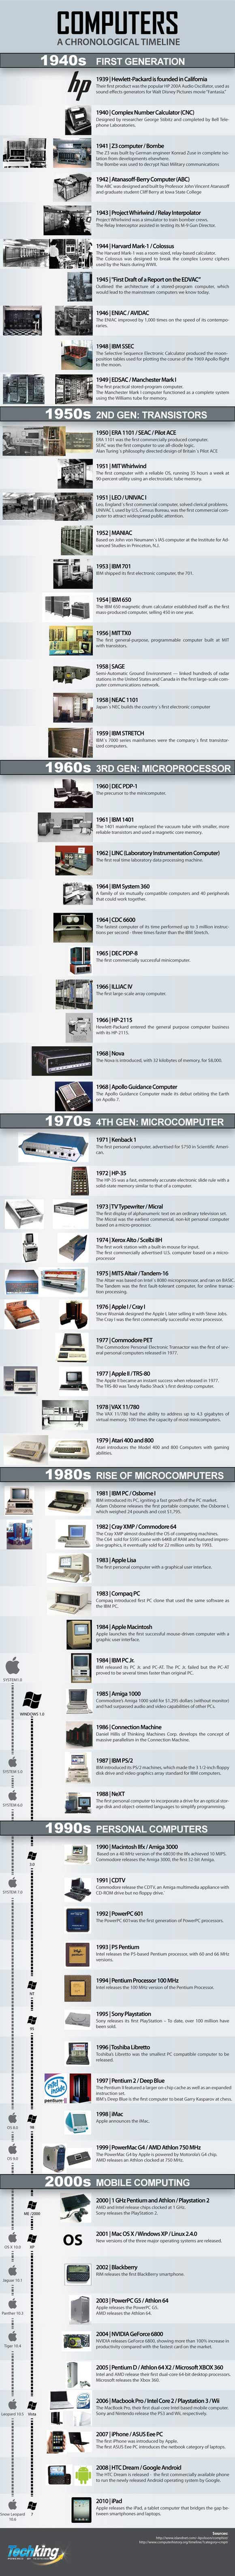 Let's Flashback to 1940: The History of Computer - Infographic